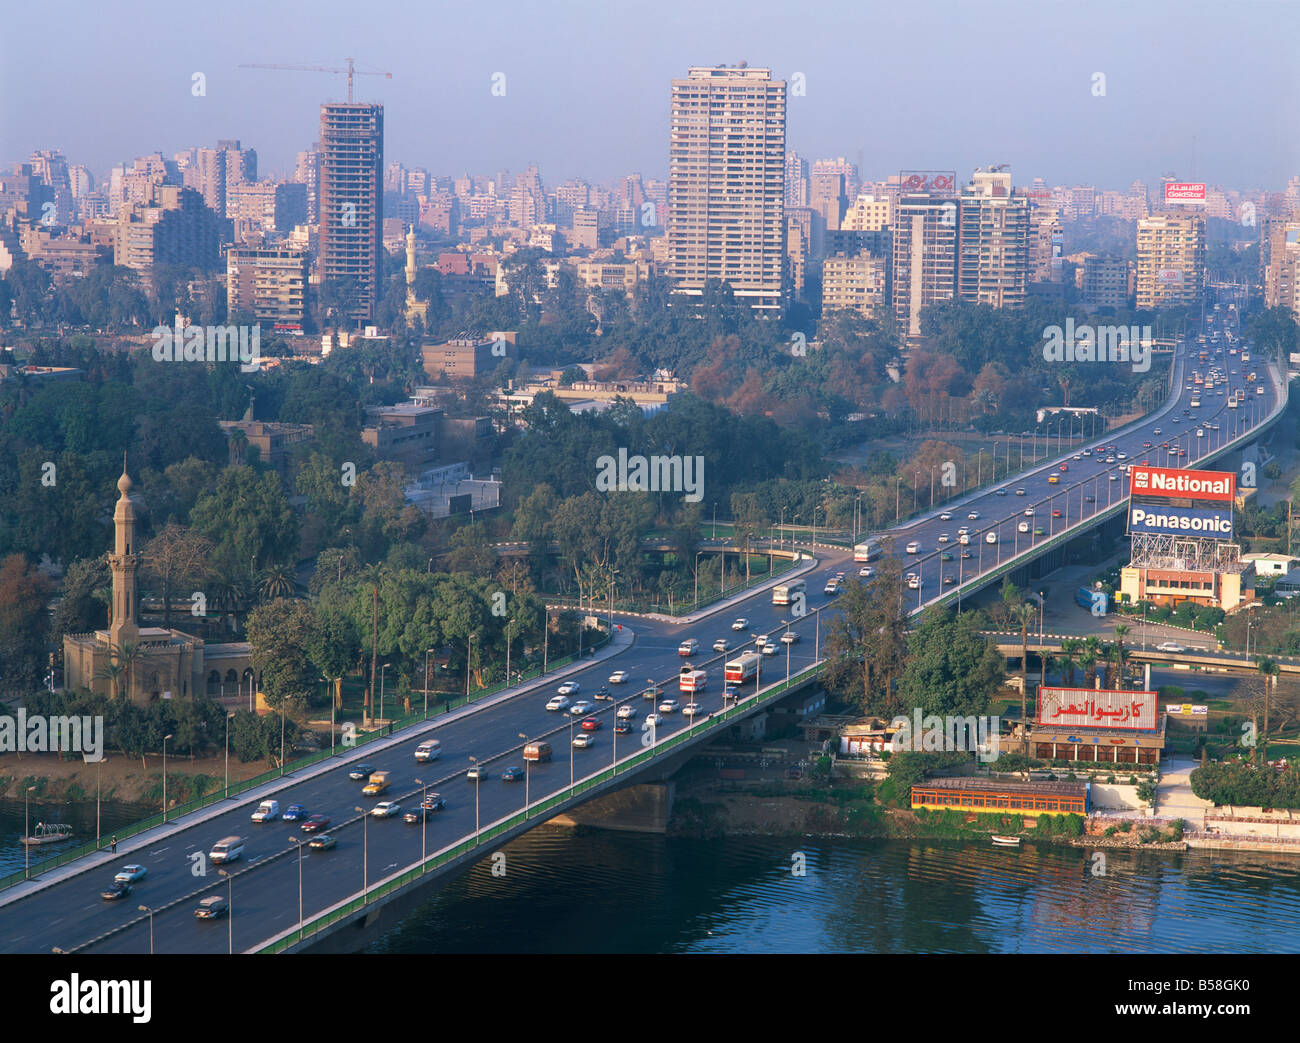 City Skyline With The 6th October Bridge Over River Nile Seen From Cairo Tower